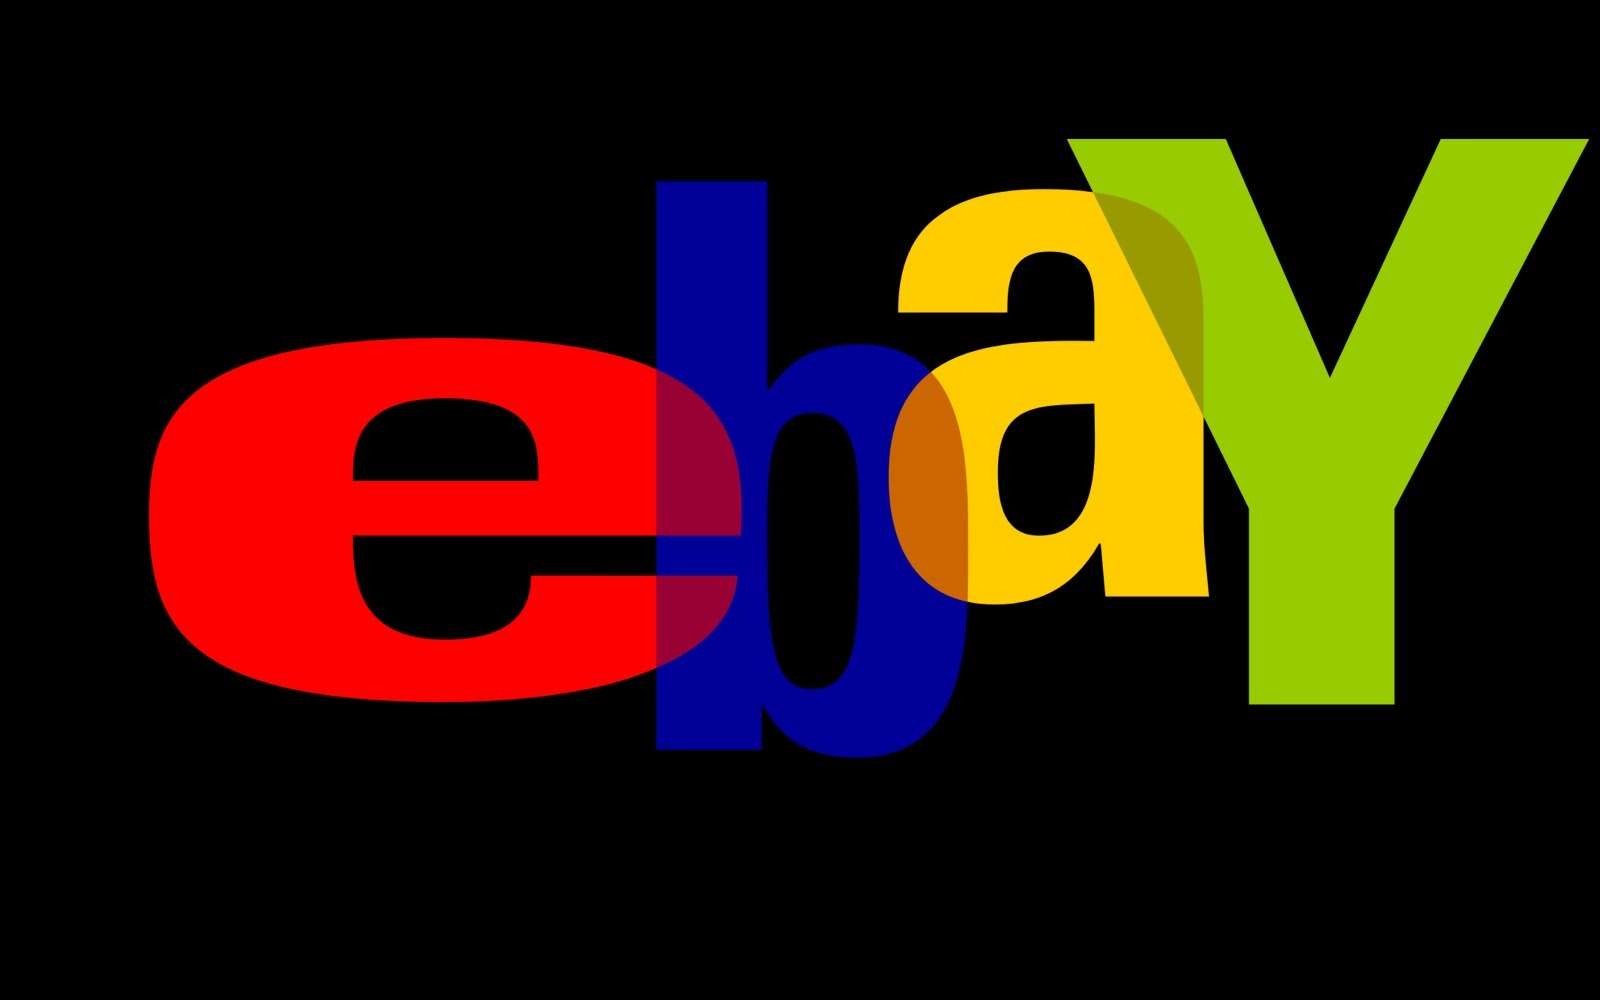 eBay Gives You a 10% Site-Wide Discount - Buy Anything for a Reduced Price  [Promo Code Inside]